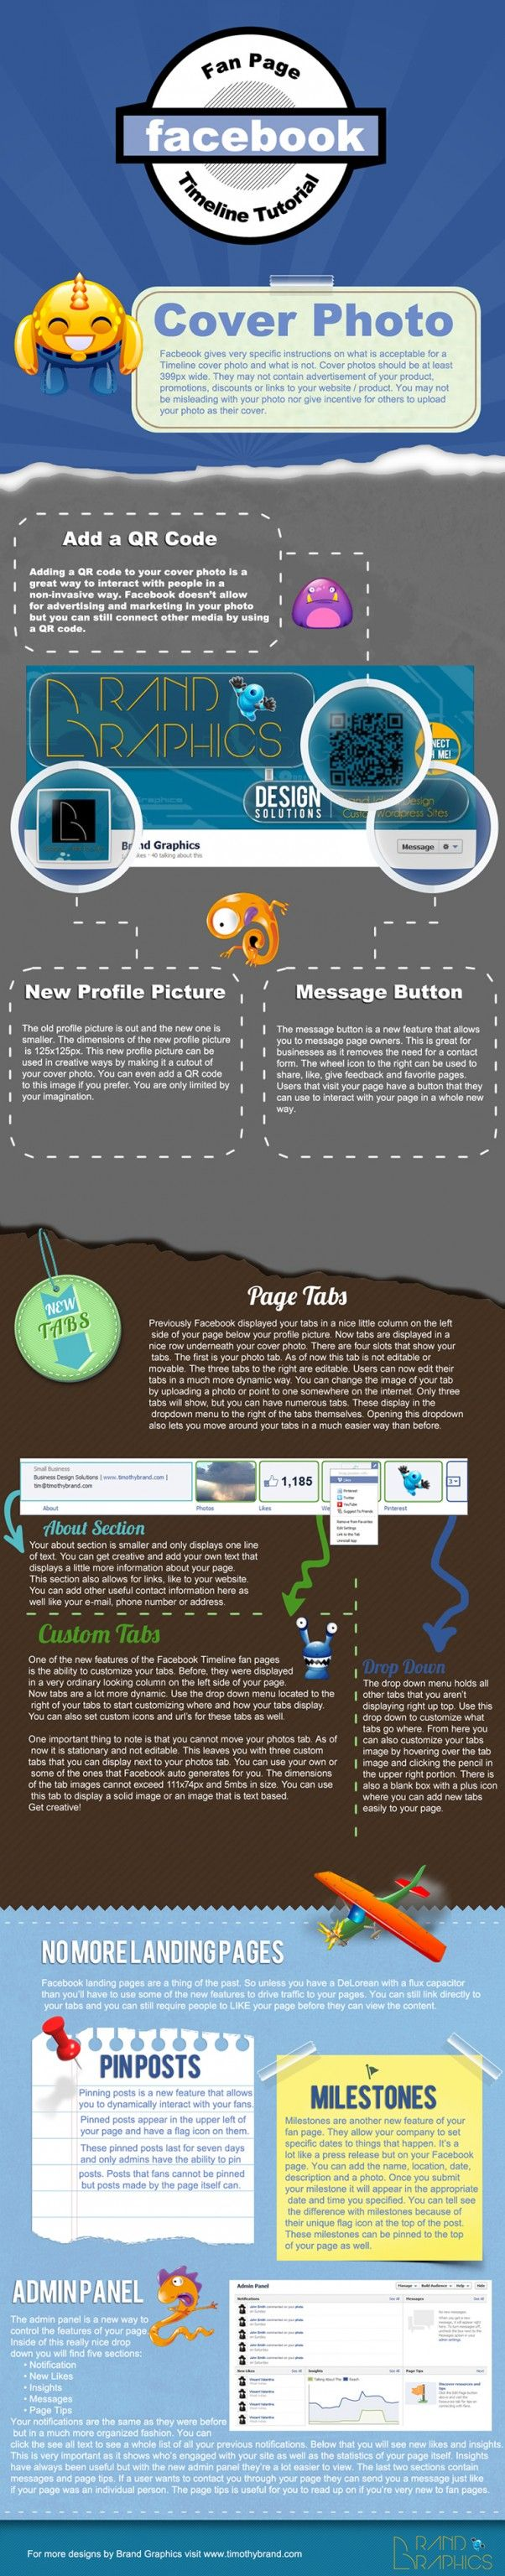 The new Facebook timeline infographic